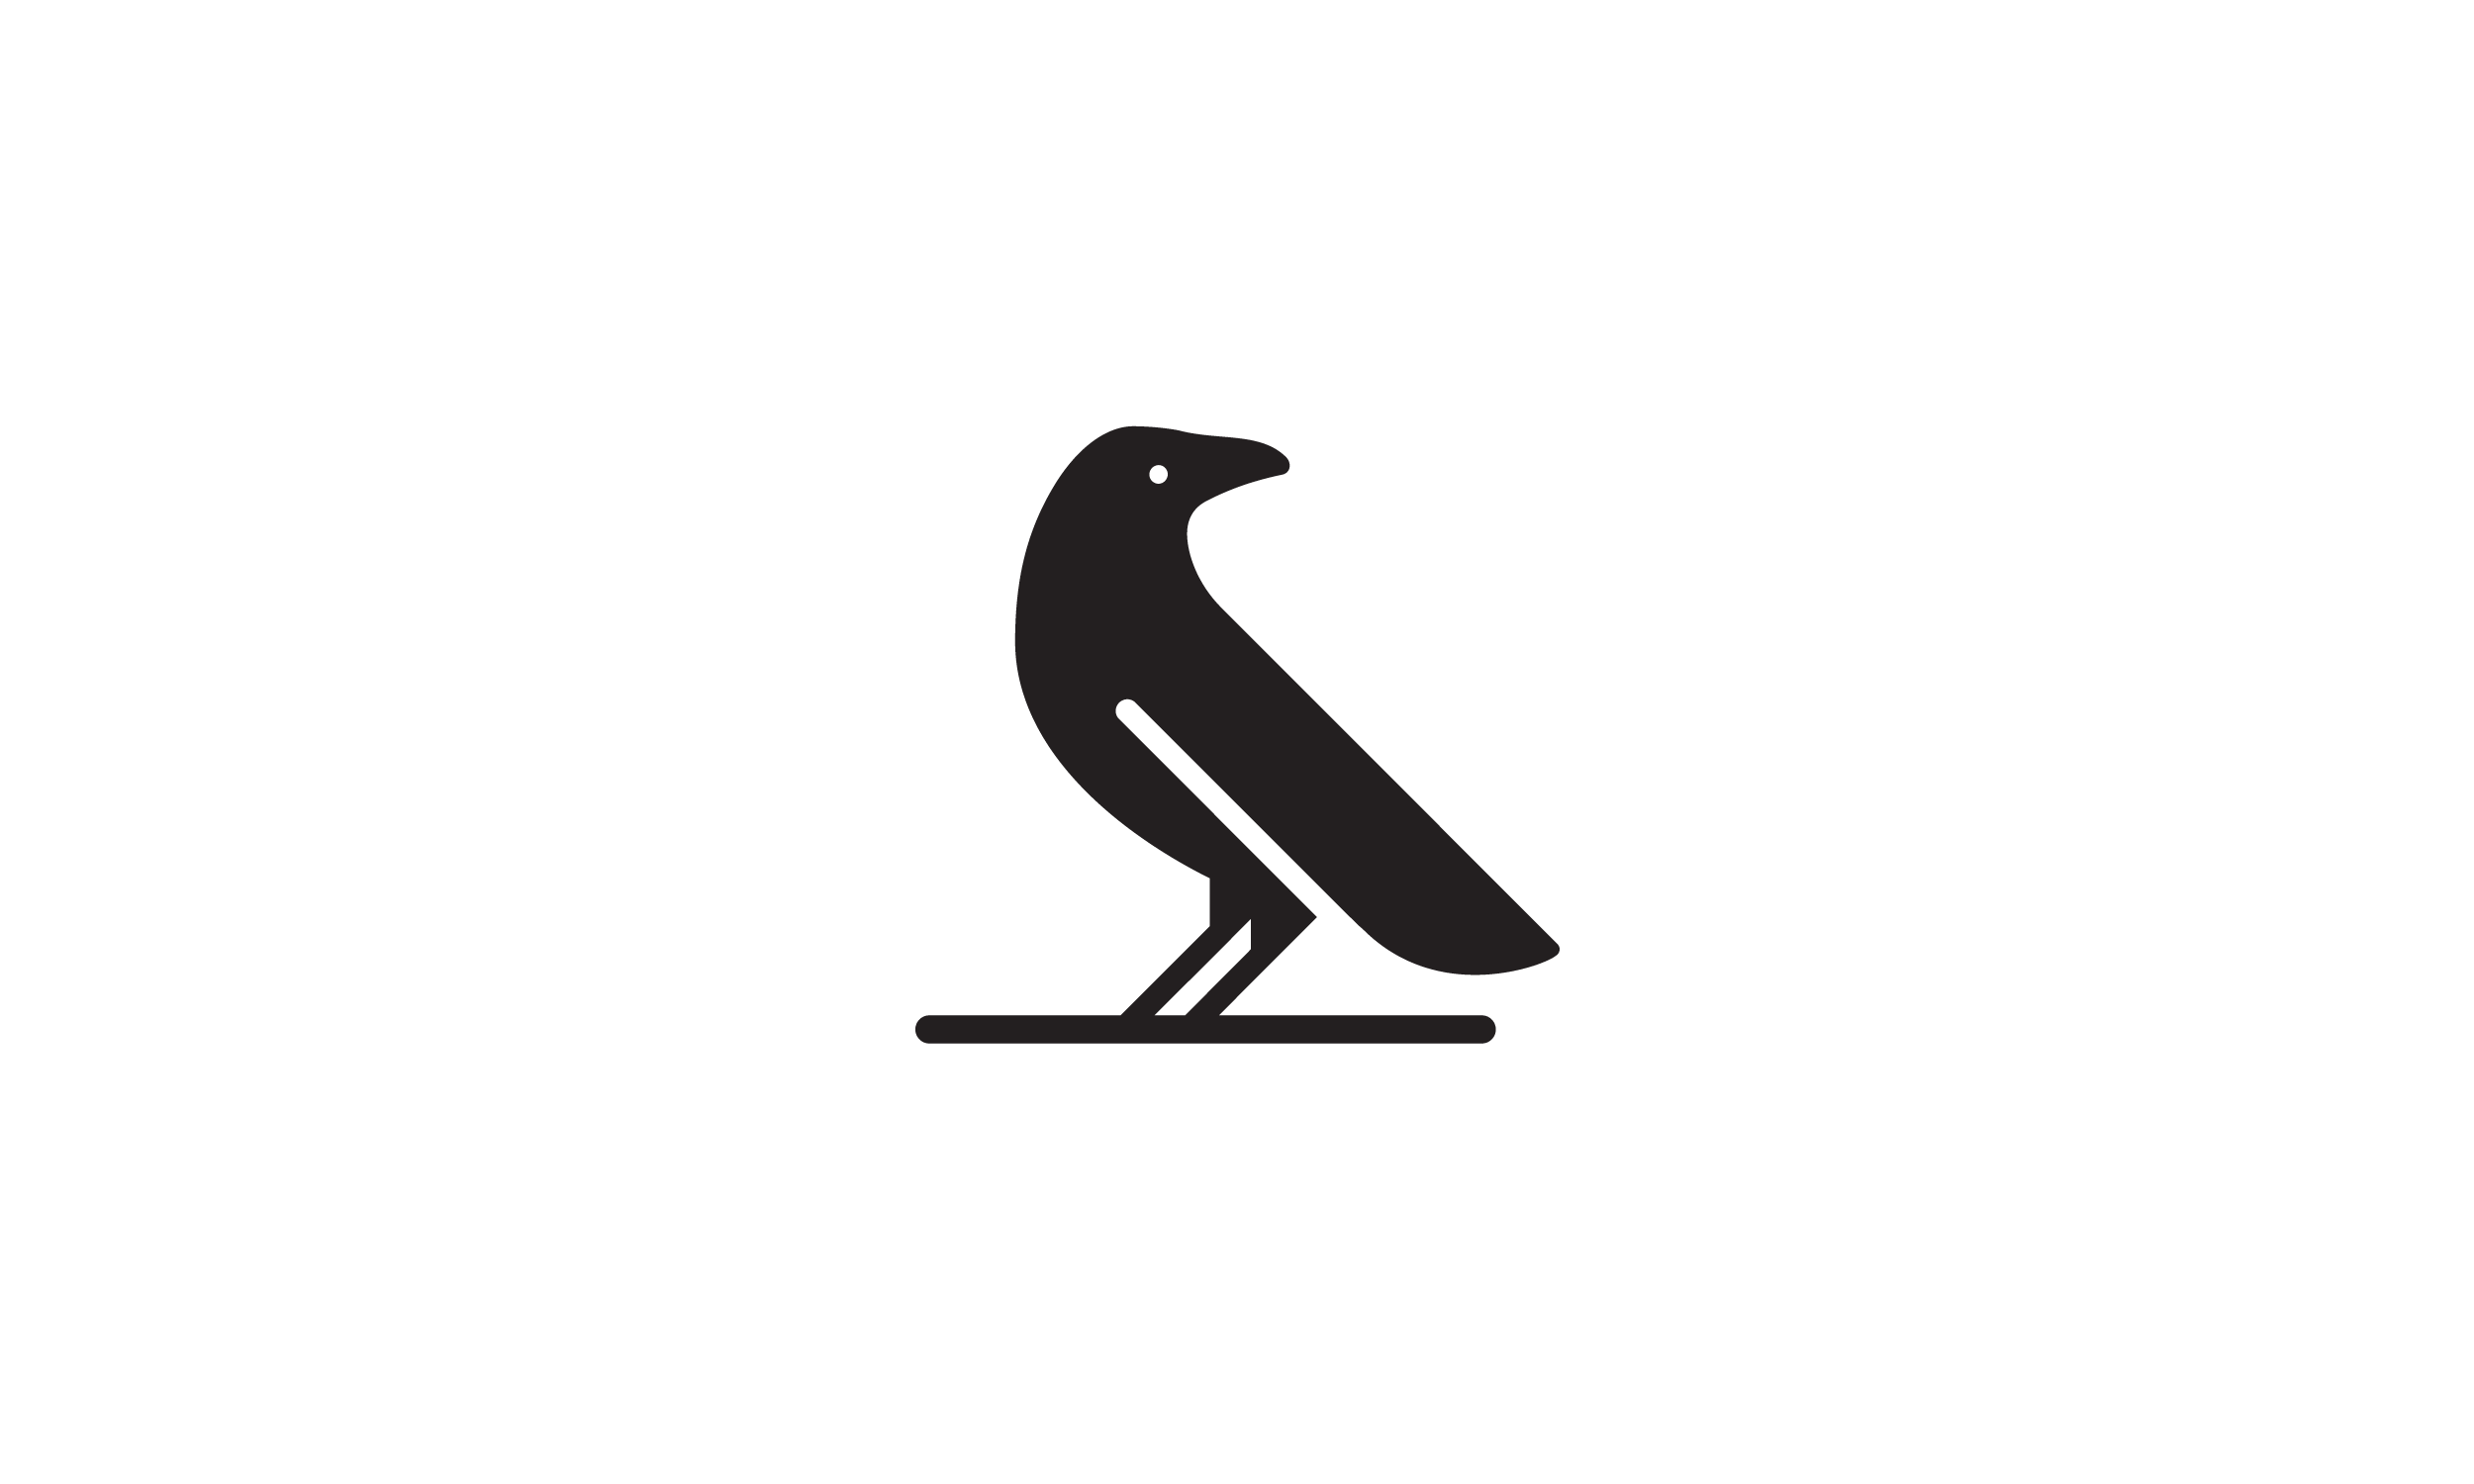 Finka_Studio_Crow_Counseling_Icon_2500x1500.png